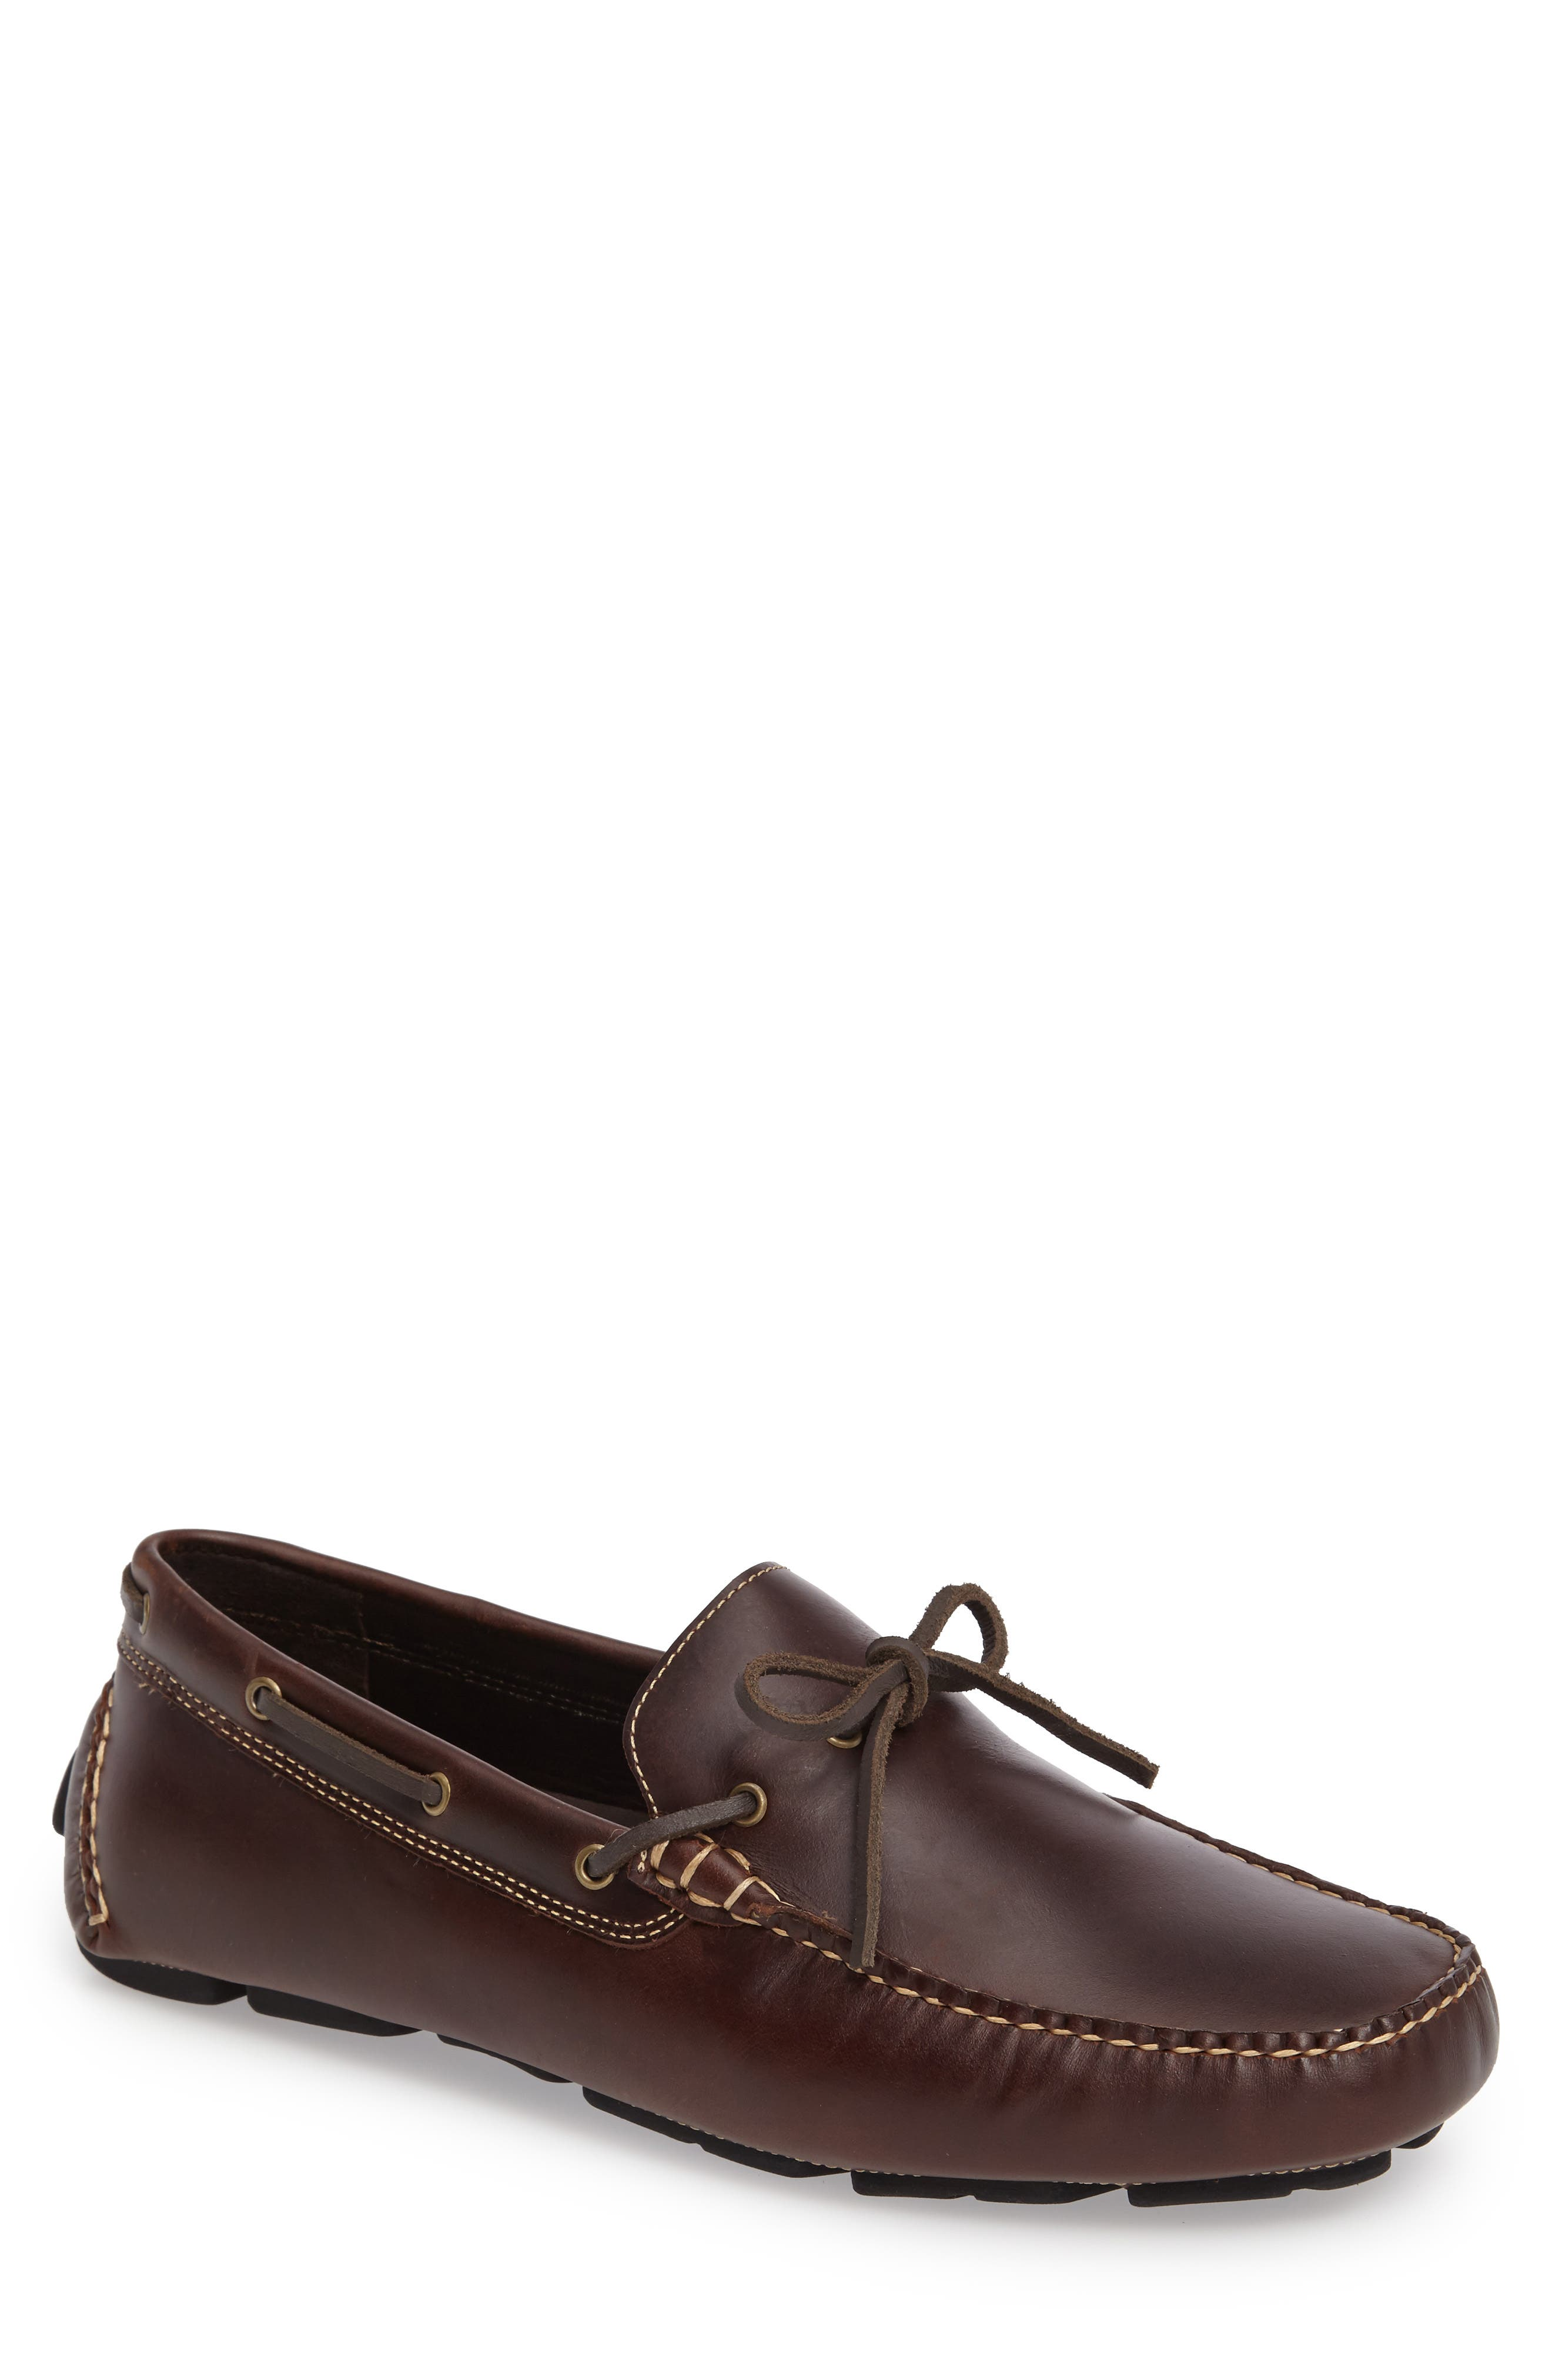 Gibson Driving Moccasin,                         Main,                         color,